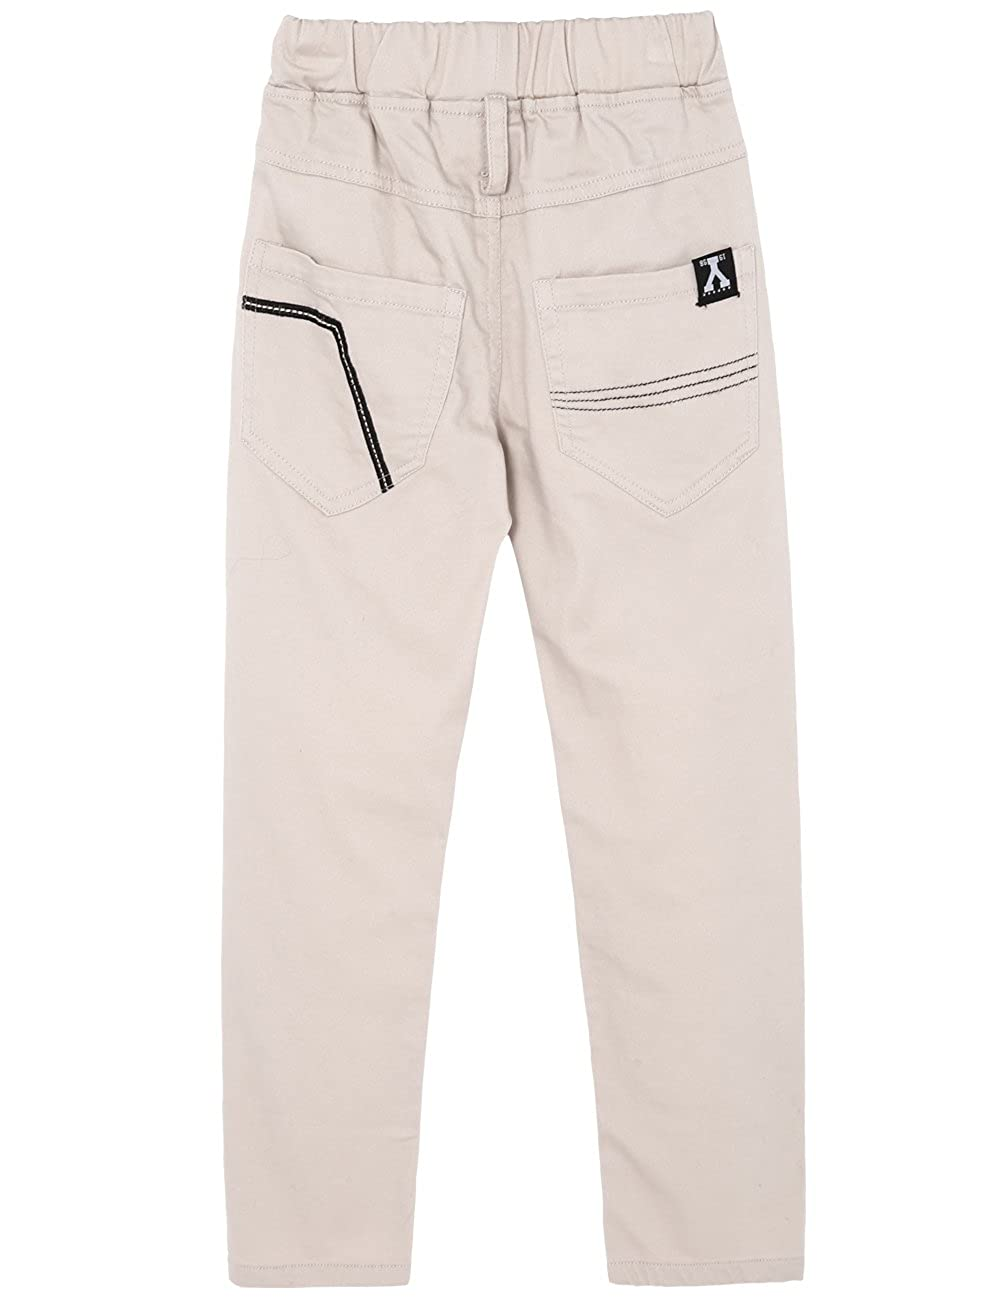 7170100822 BYCR Boys Elastic Waist Cotton Jogger Pants For Kids Size 4-12 No